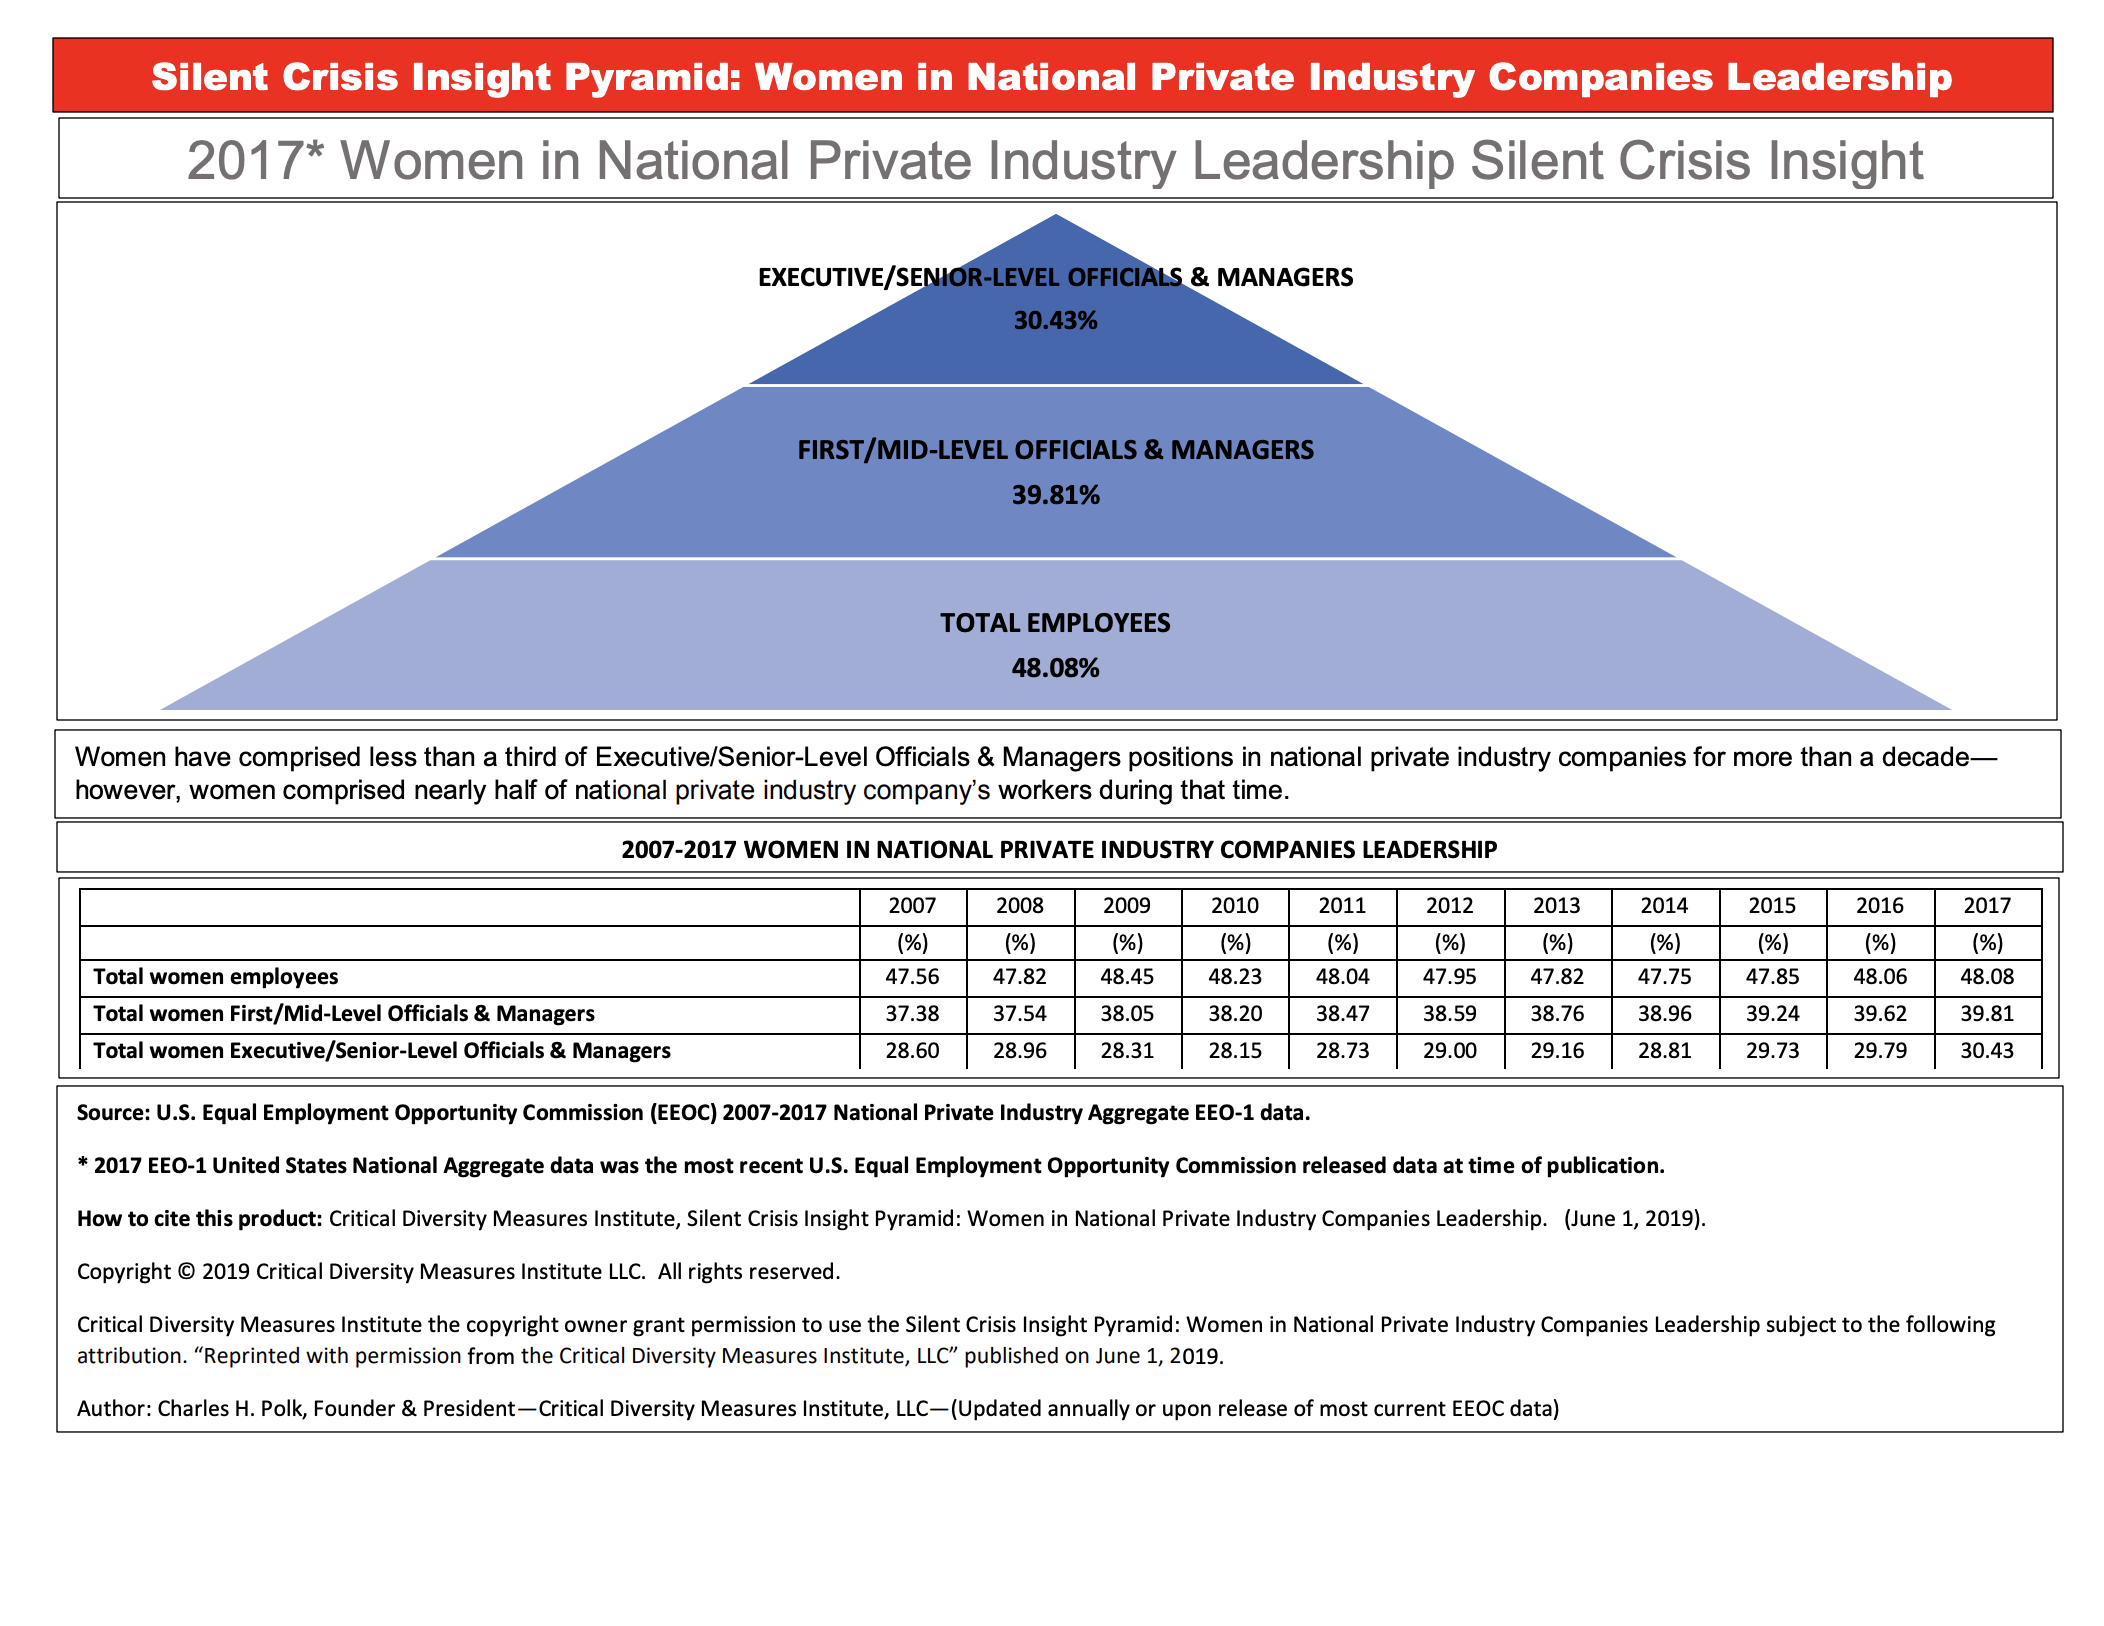 women-in-national-private-industry-companies-leadership